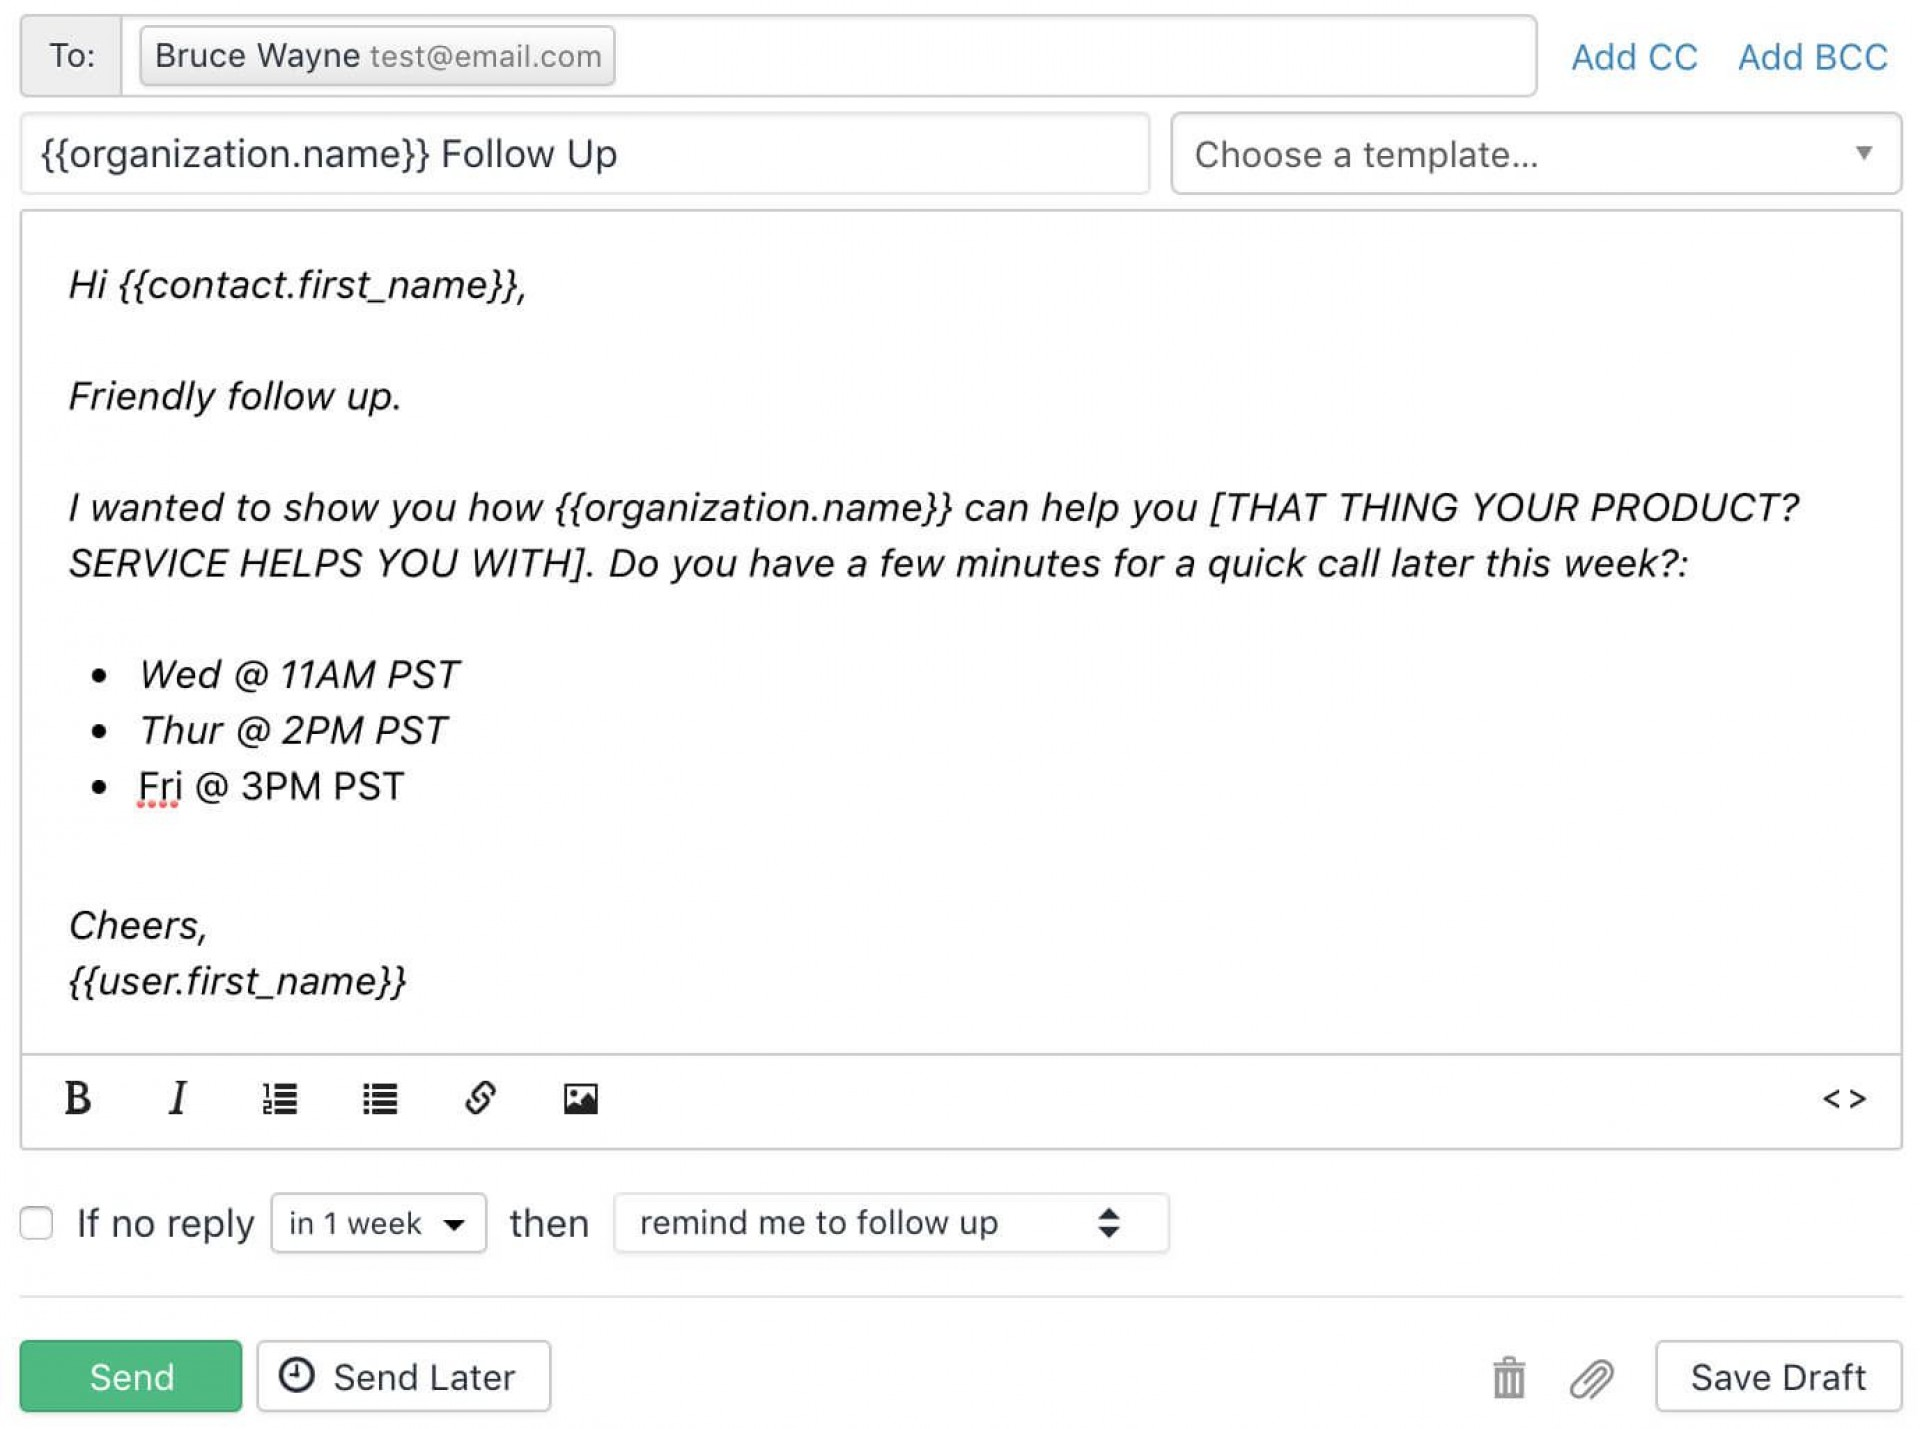 008 Unforgettable Follow Up Email Template After No Response Sample 1920